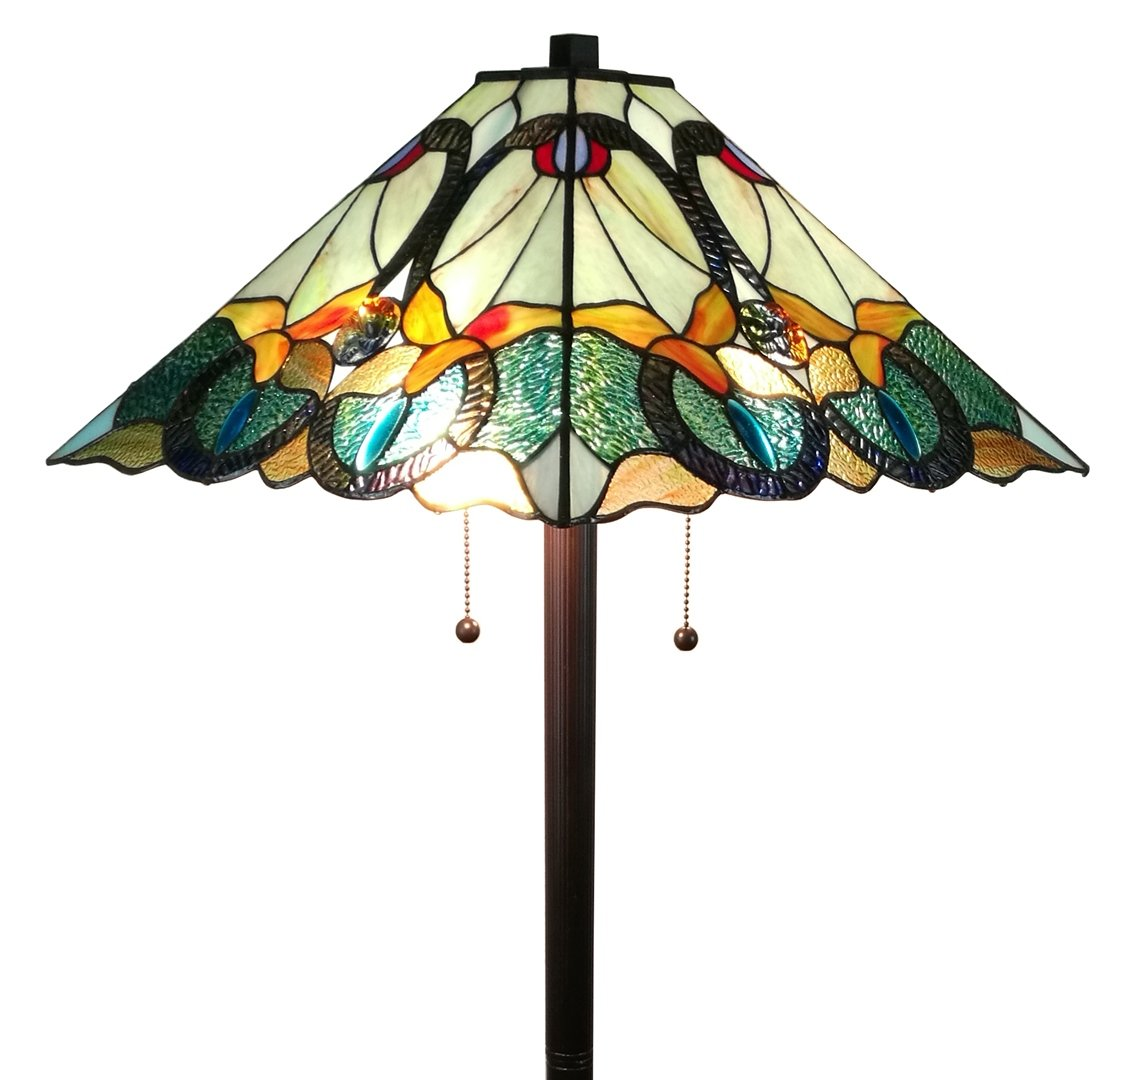 Amora Lighting AM255FL17 63'' High Tiffany Style Mission Floor Lamp, Green/Yellow by Amora Lighting